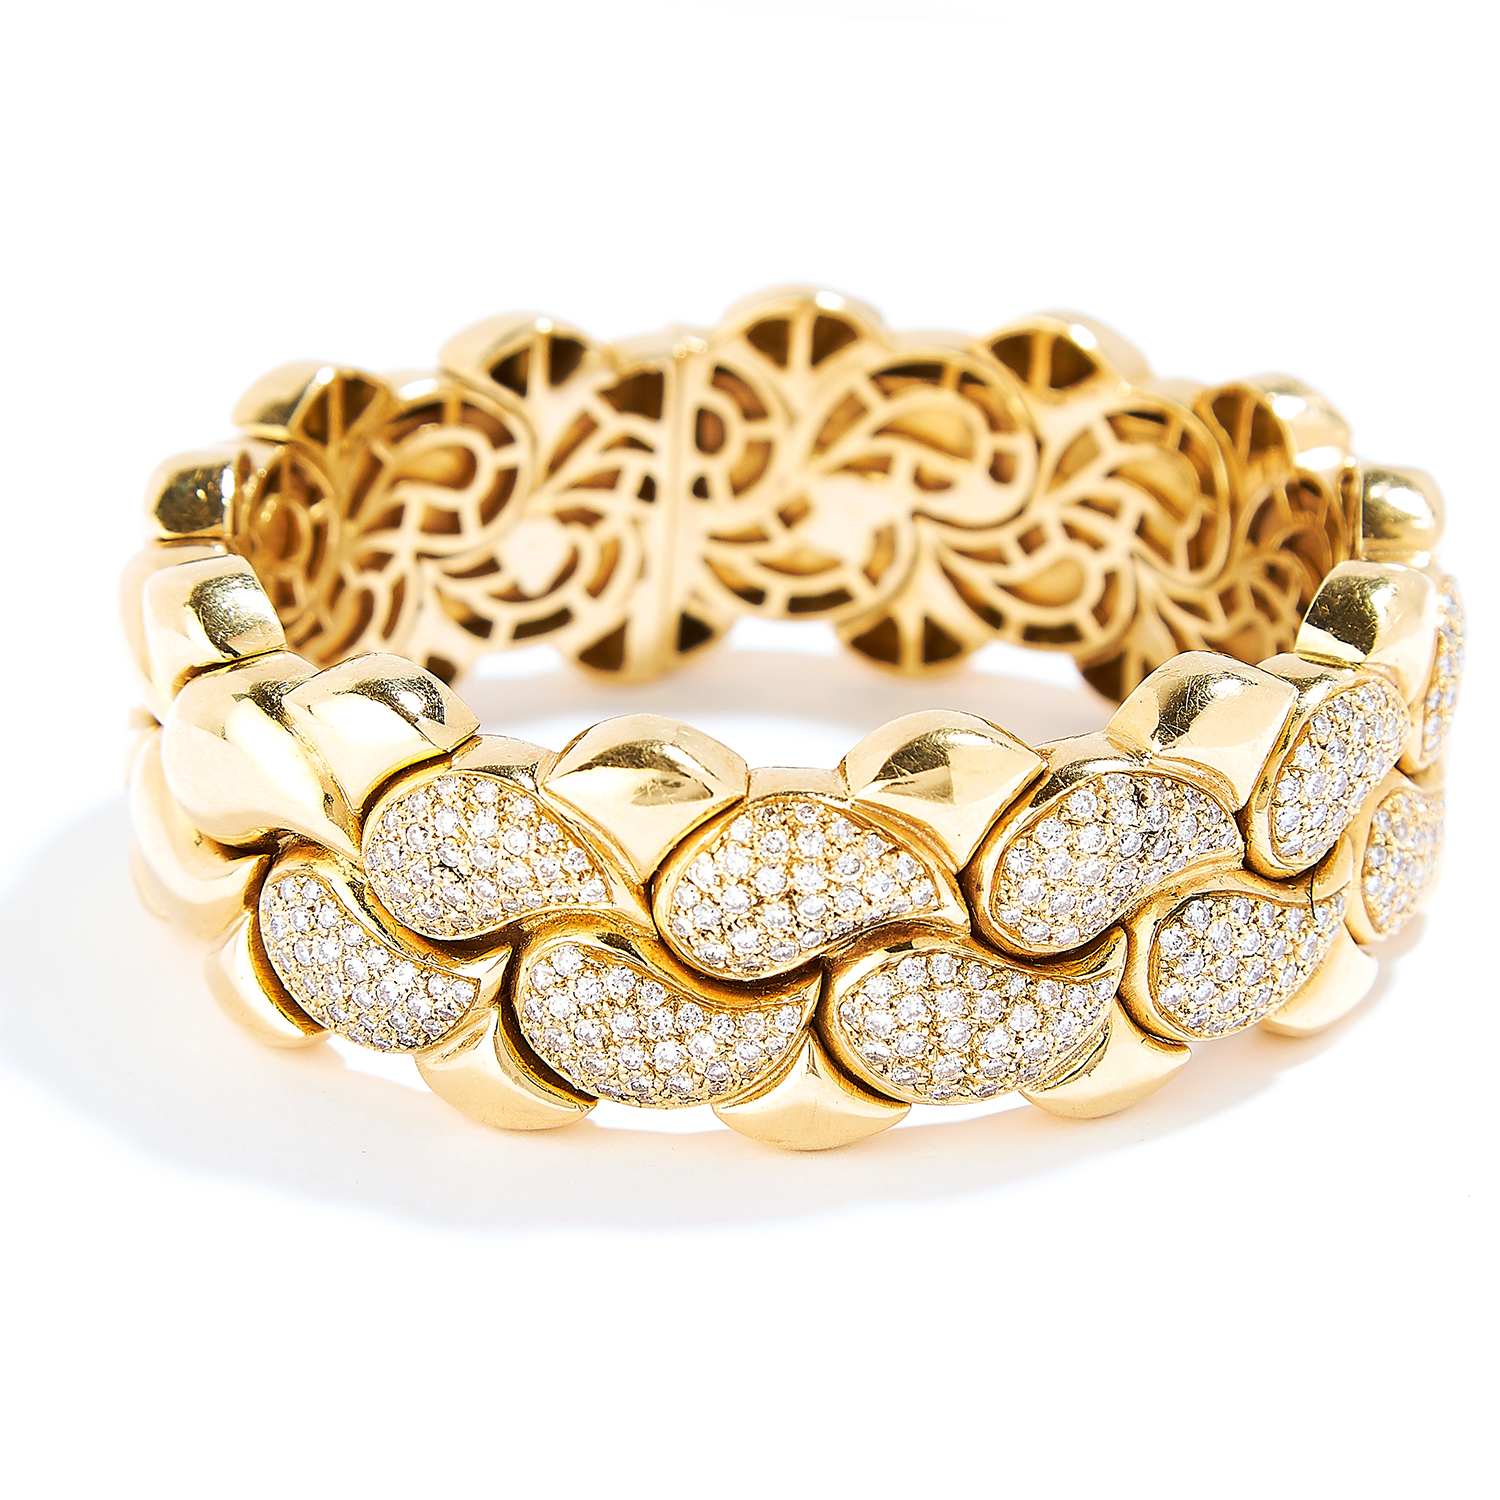 'CASMIR' DIAMOND NECKLACE AND BRACELET SUITE in 18ct yellow gold, in the style of Chopard, each - Bild 4 aus 4